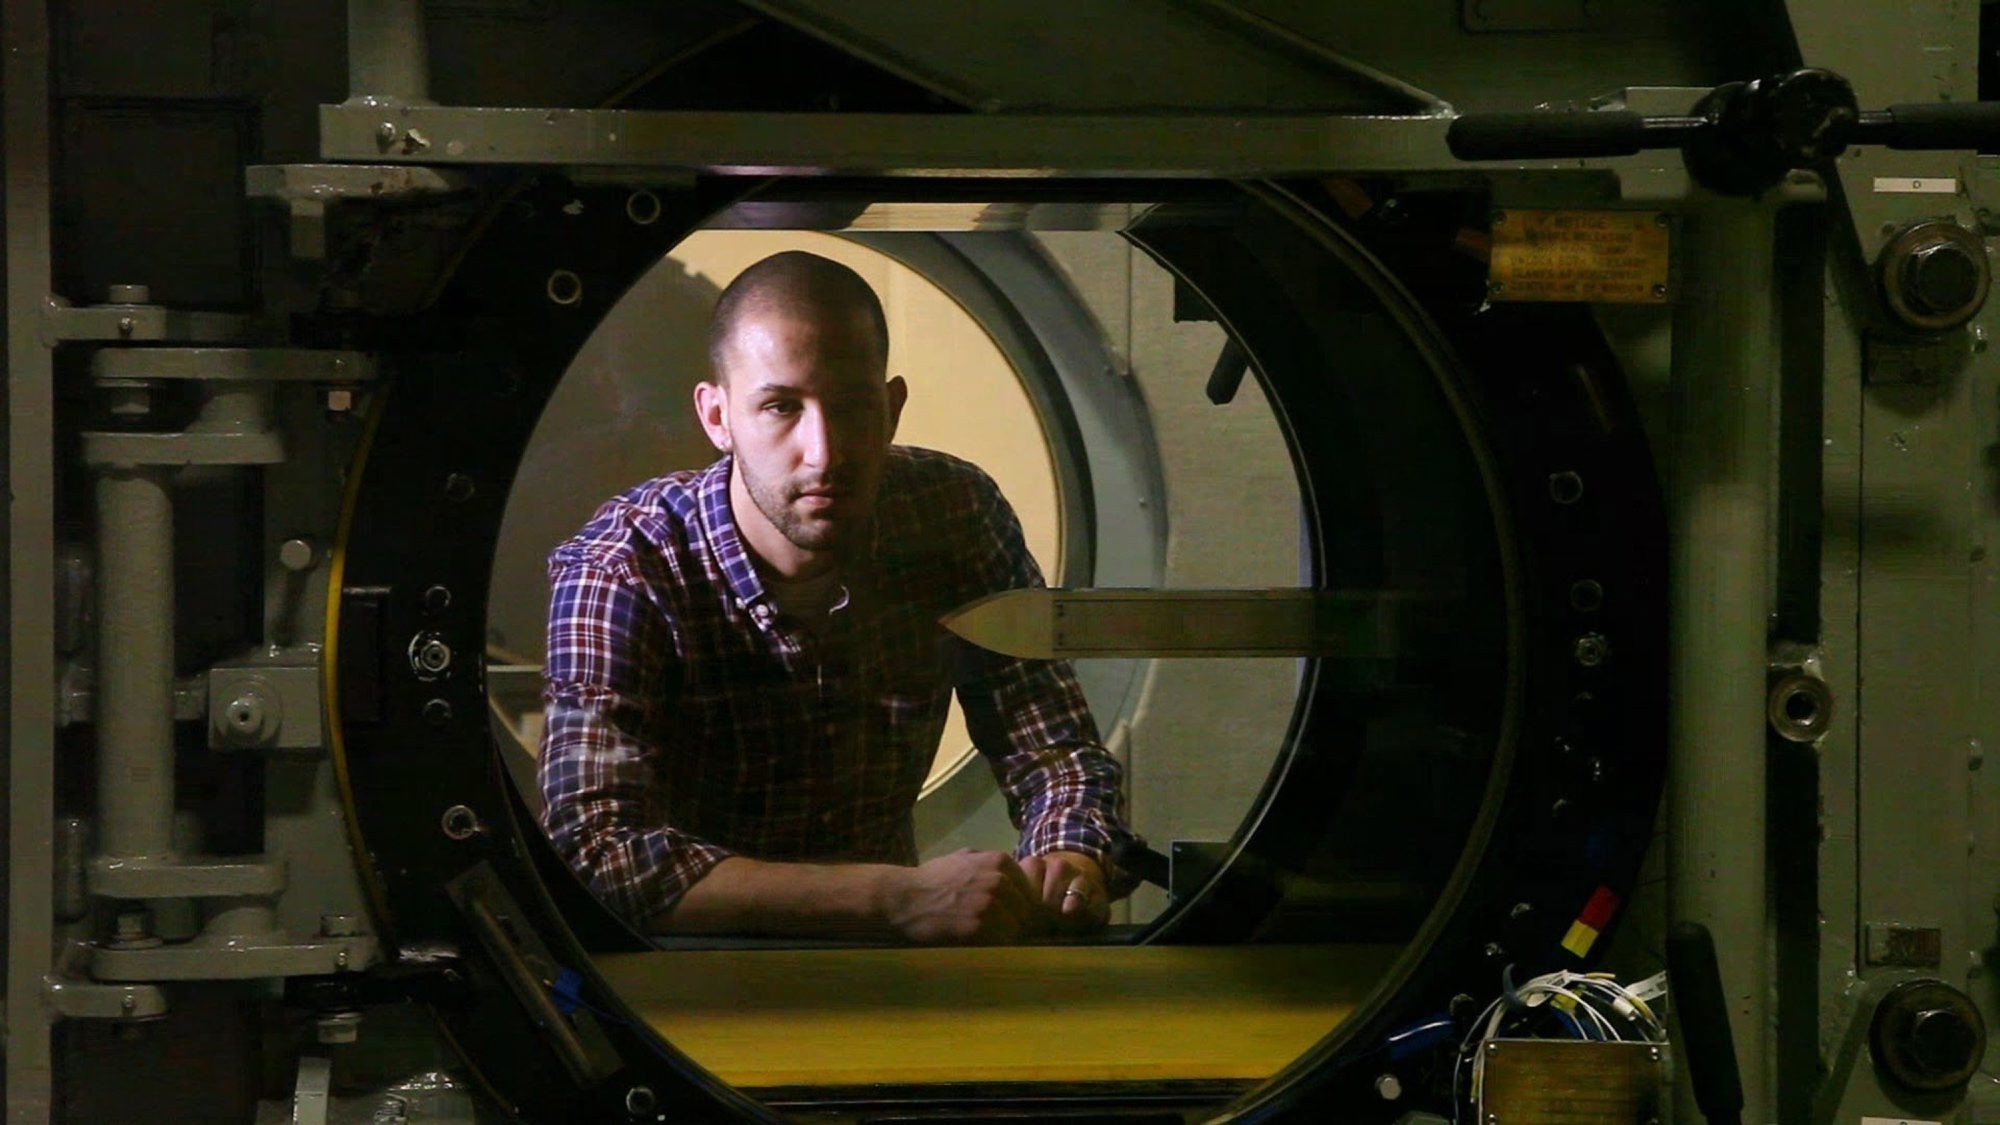 Aerospace engineer Benjamin Hagen looks inside of the Air Force Research Laboratory's trisonic wind tunnel, where he is studying the fluid dynamics of transonic air flow at Wright-Patterson Air Force Base in Dayton, Ohio. Due to a large number of retirements over the last few years, the research lab is looking to hire about 300 new scientists.